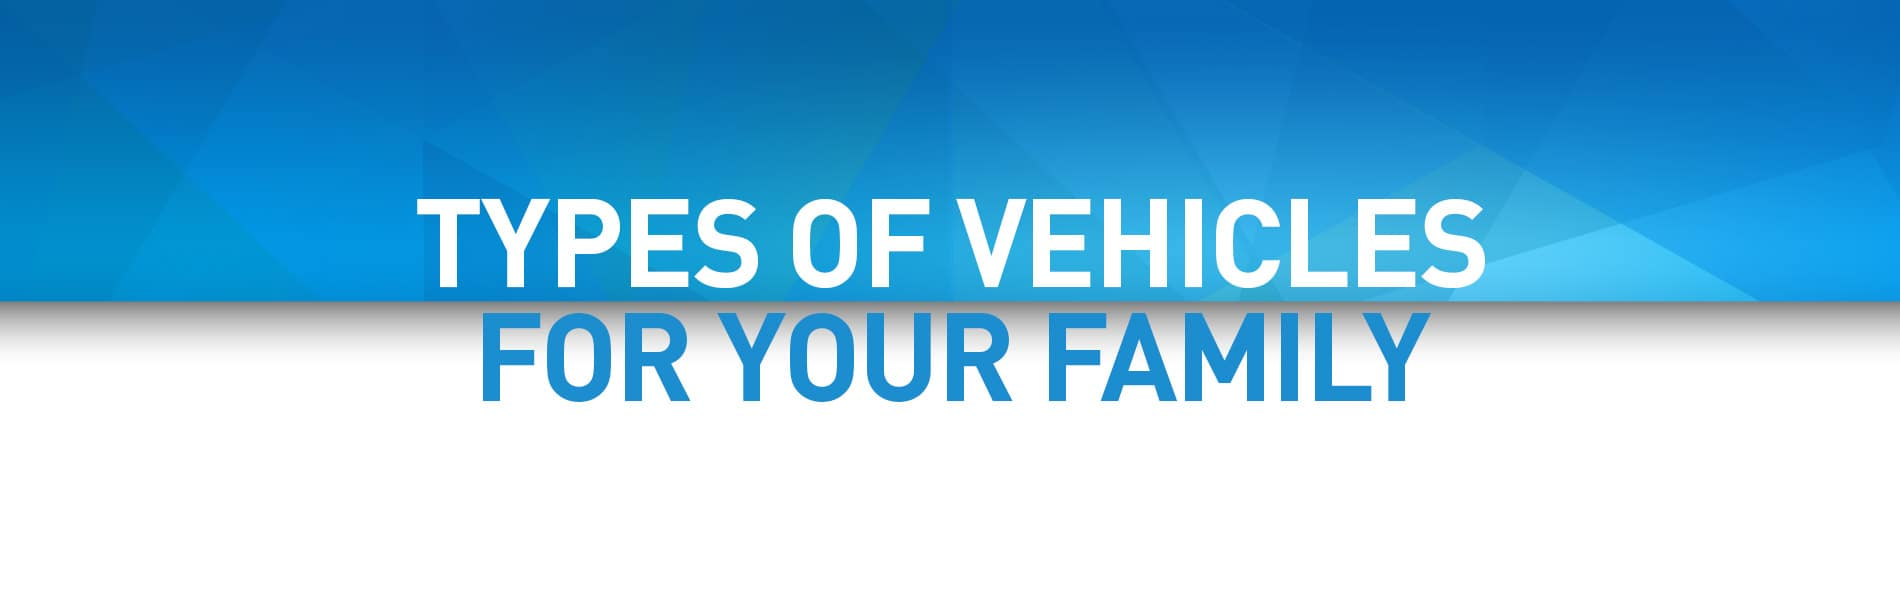 Vehicles For Your Family | Fort Wayne, IN